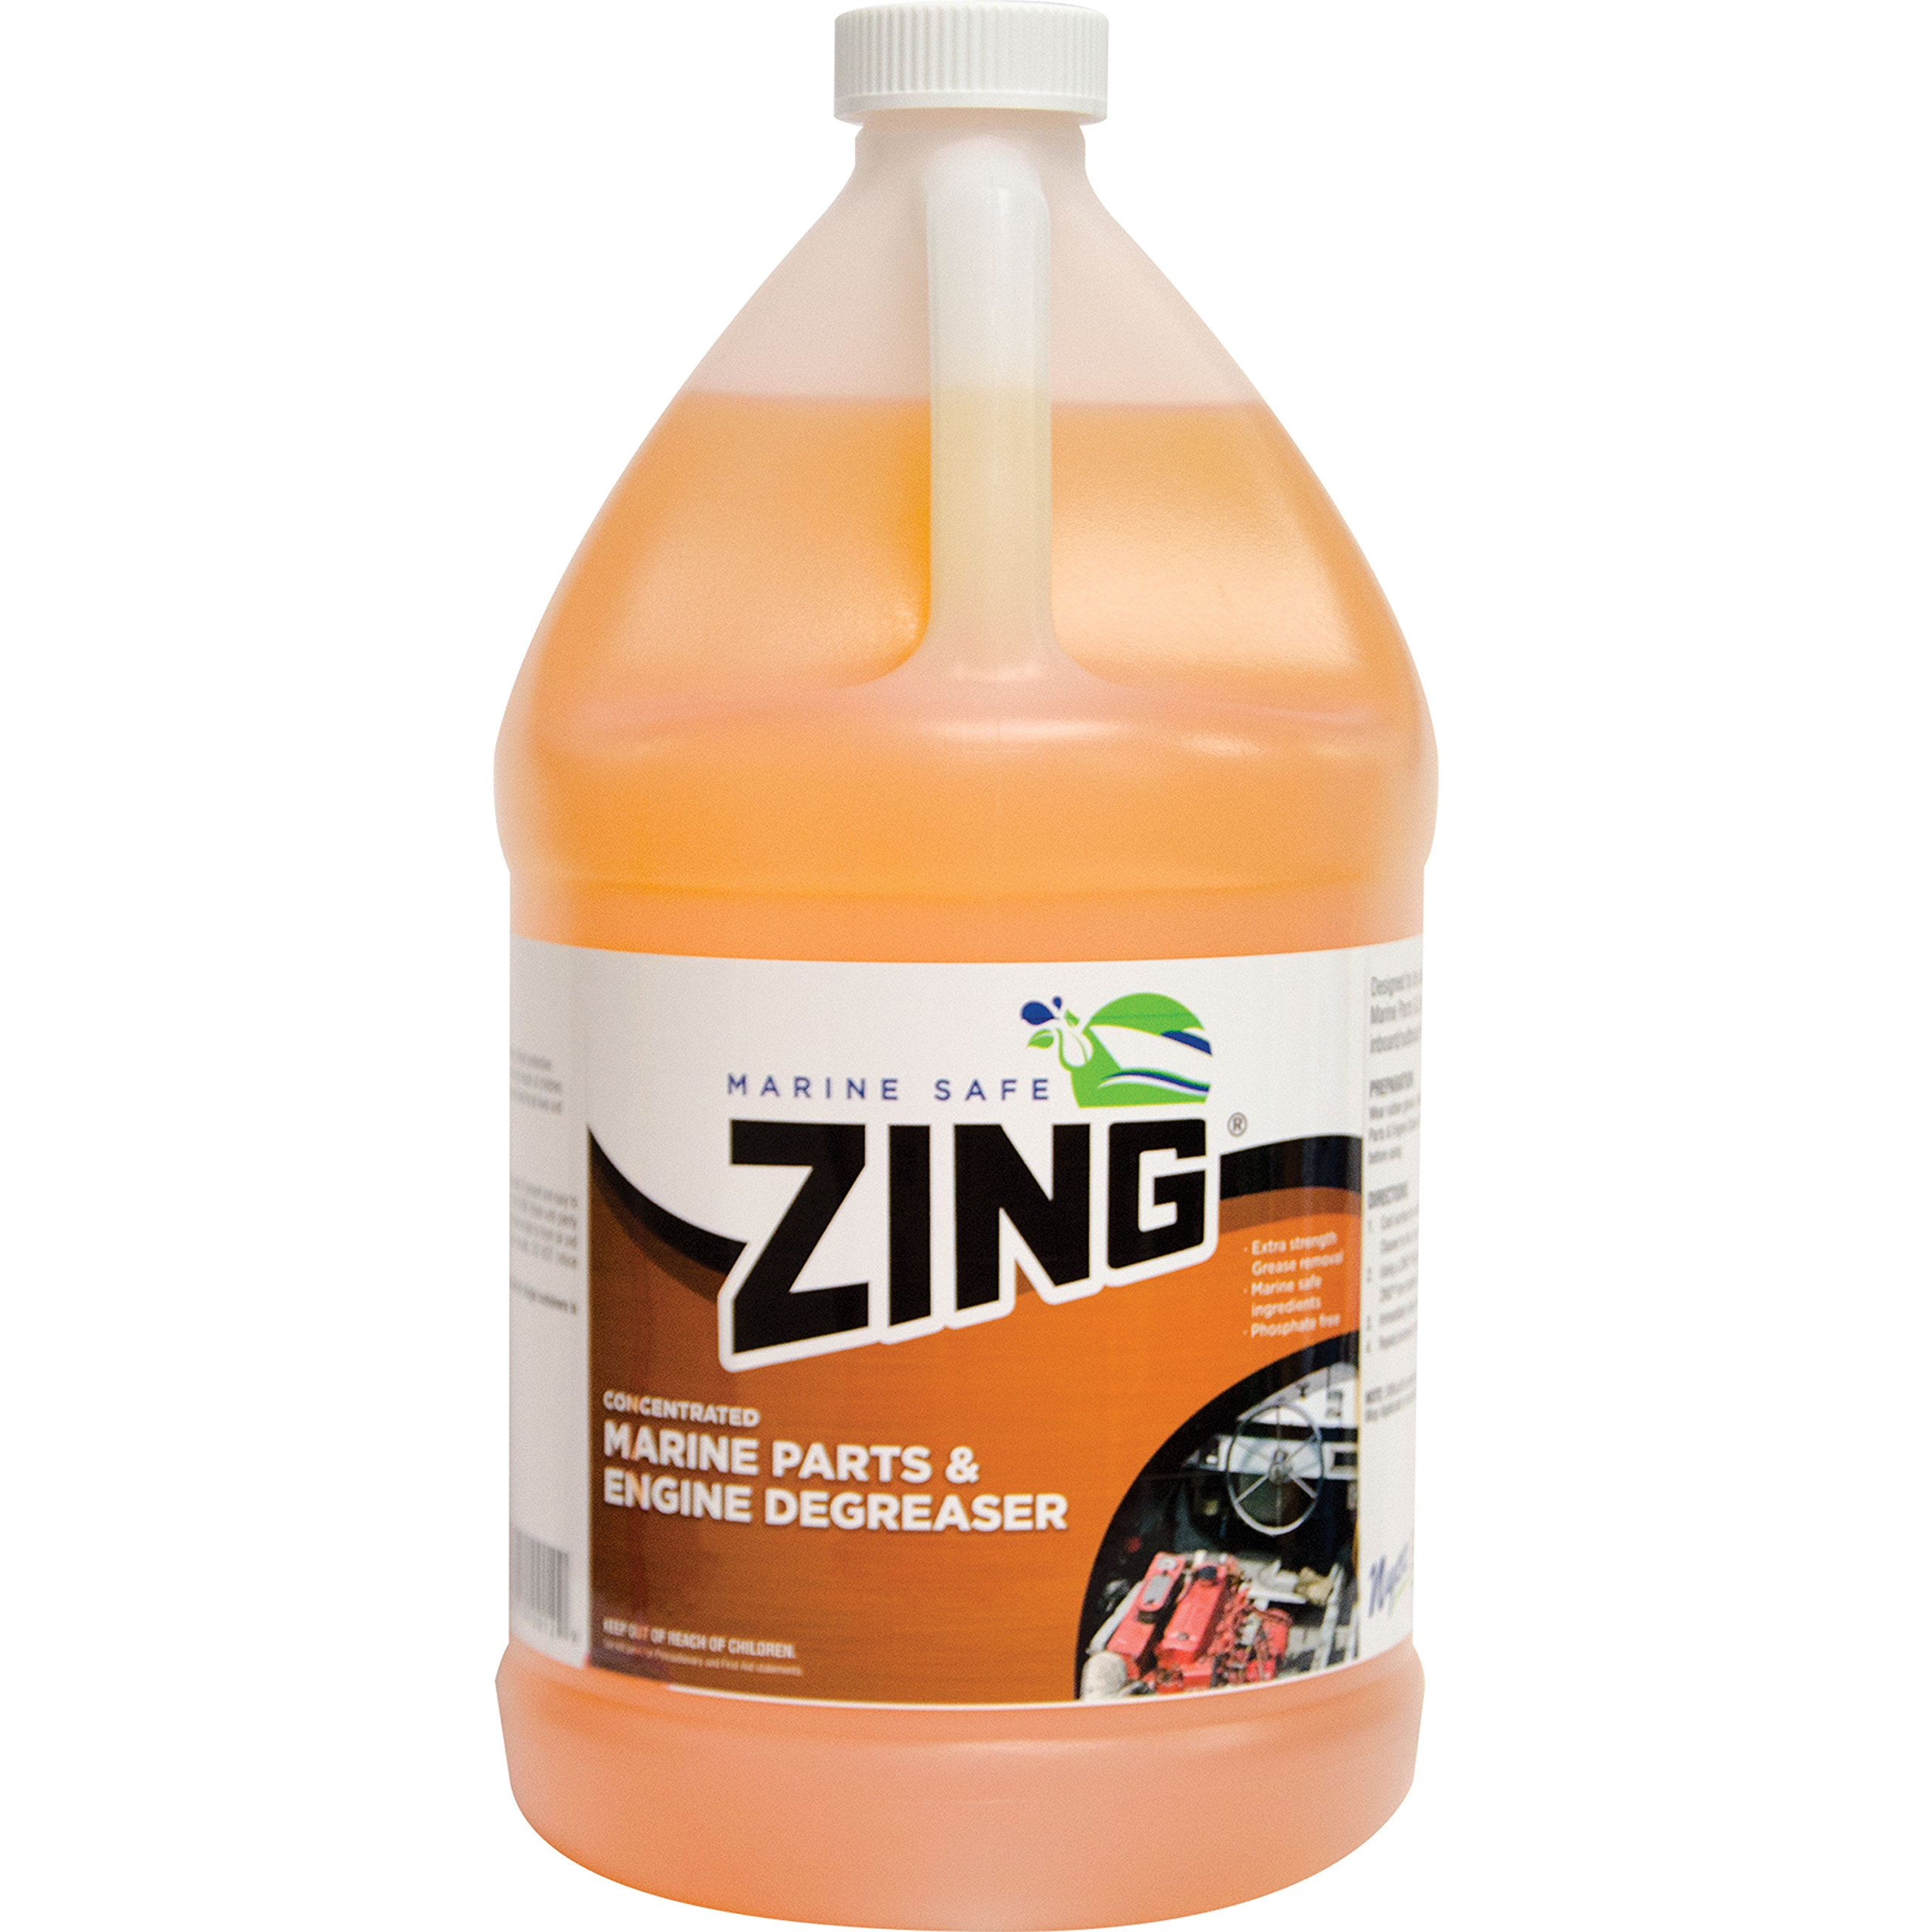 Zing 10501 Marine Safe Concentrated Marine Parts & Engine Degreaser - 1 Gallon